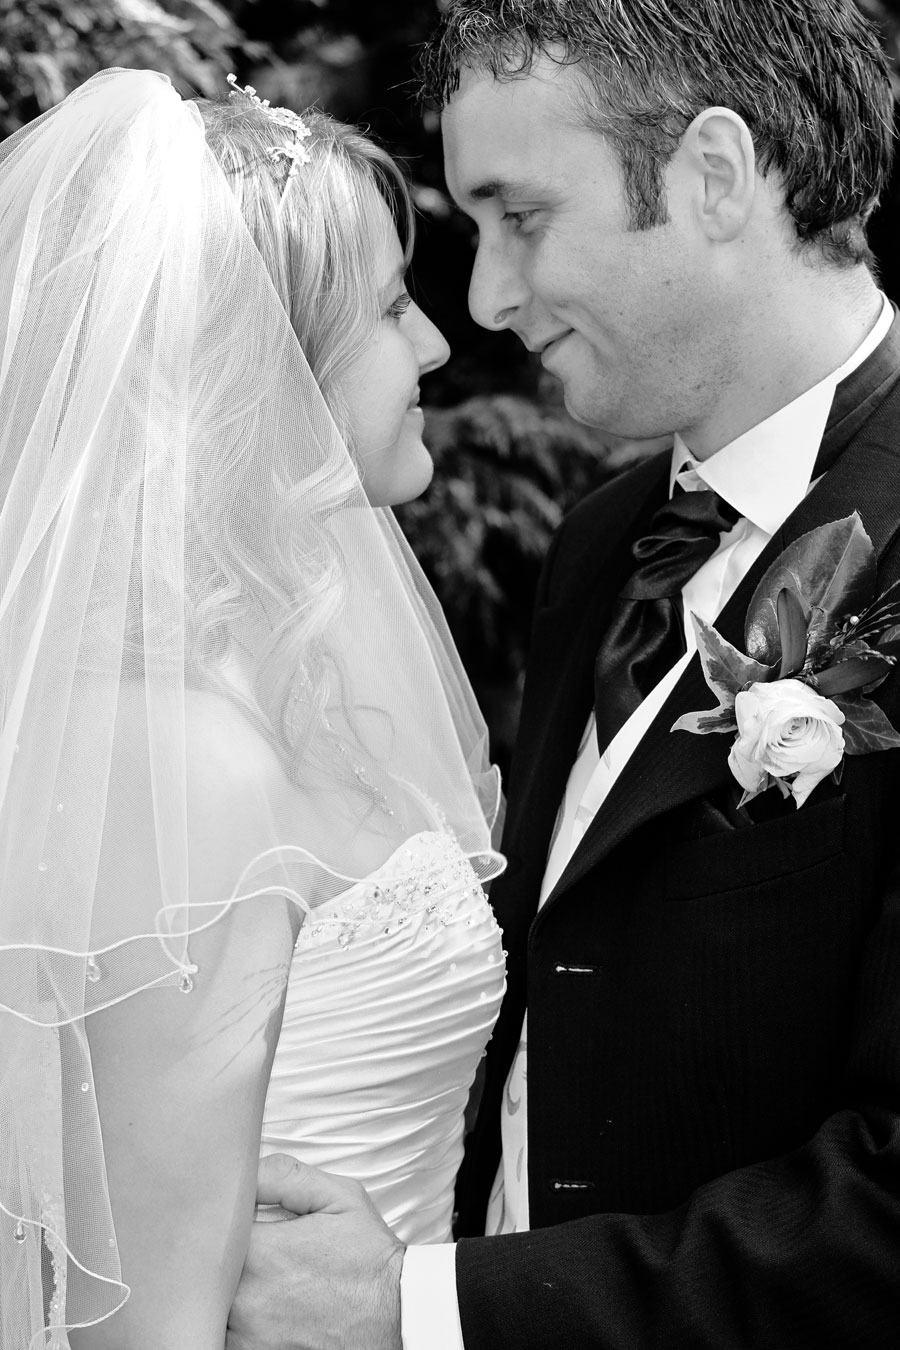 Wedding photography, Yorkshire wedding photography, Sharon Harrison wedding photographer